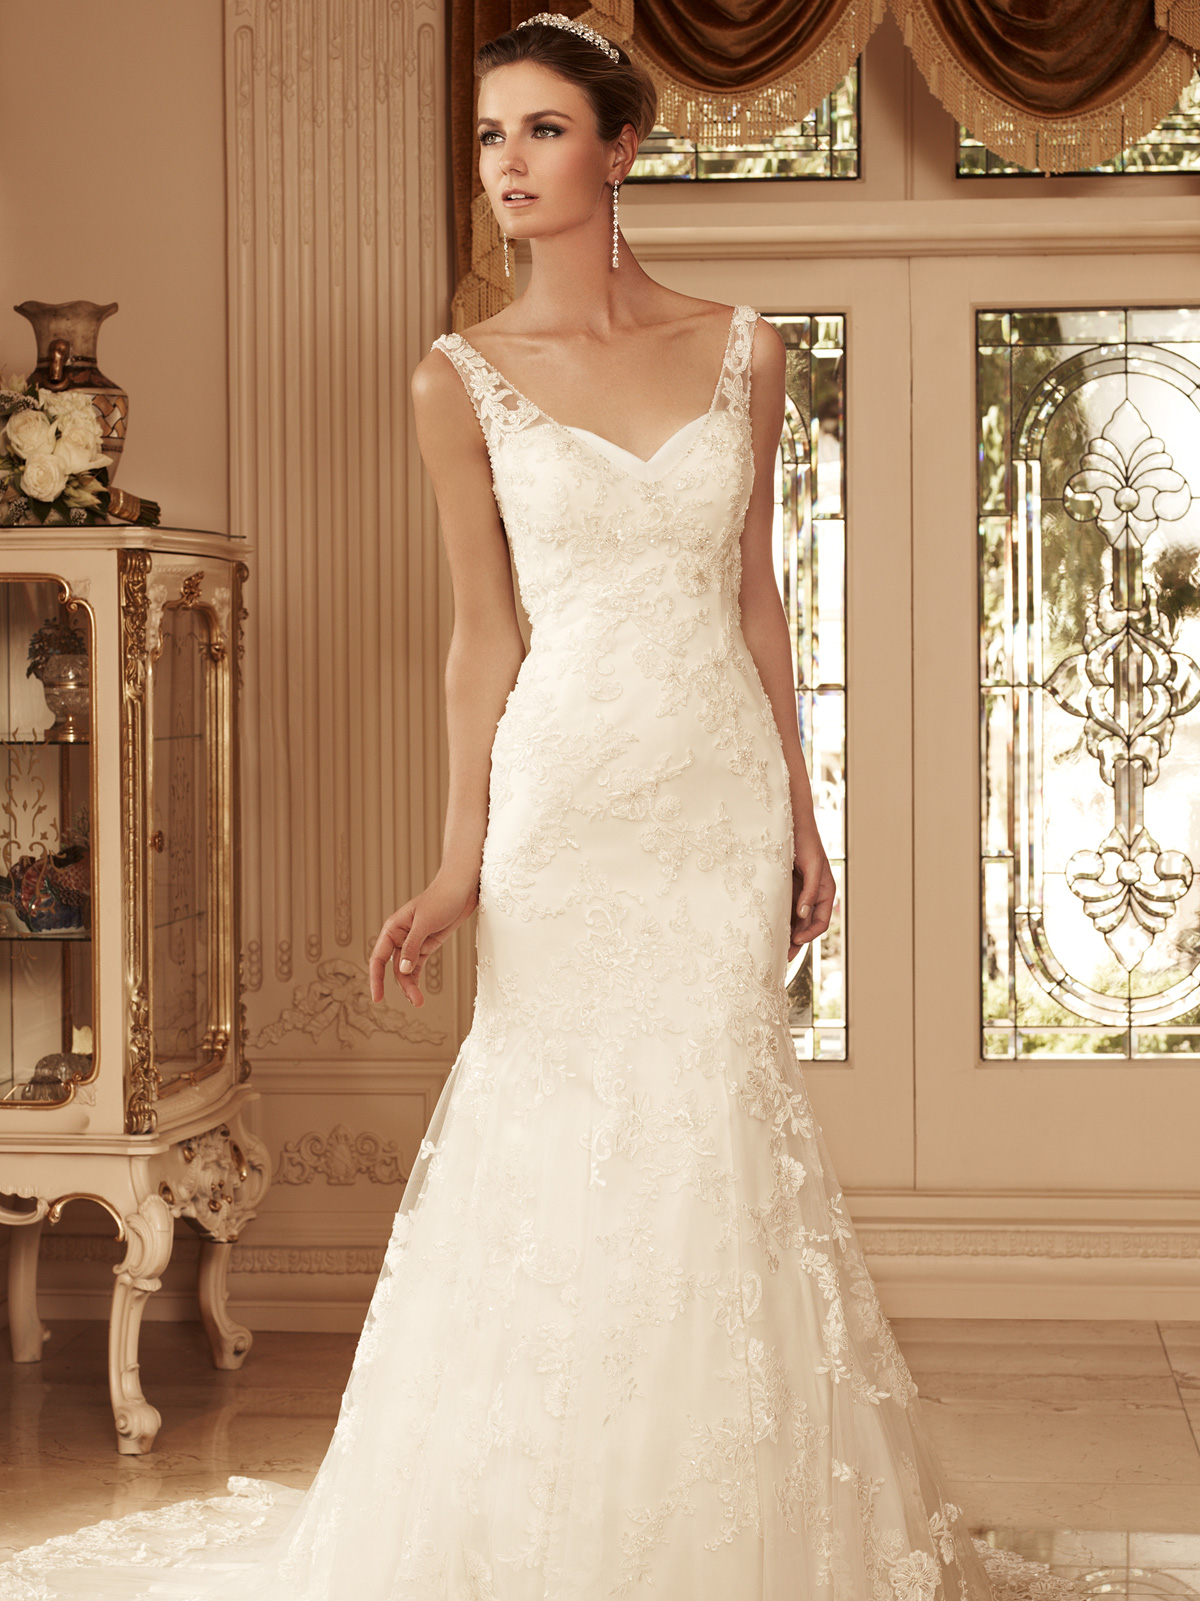 Sweetheart Trumpet Bridal Gown Casablanca Bridal Gown 2099